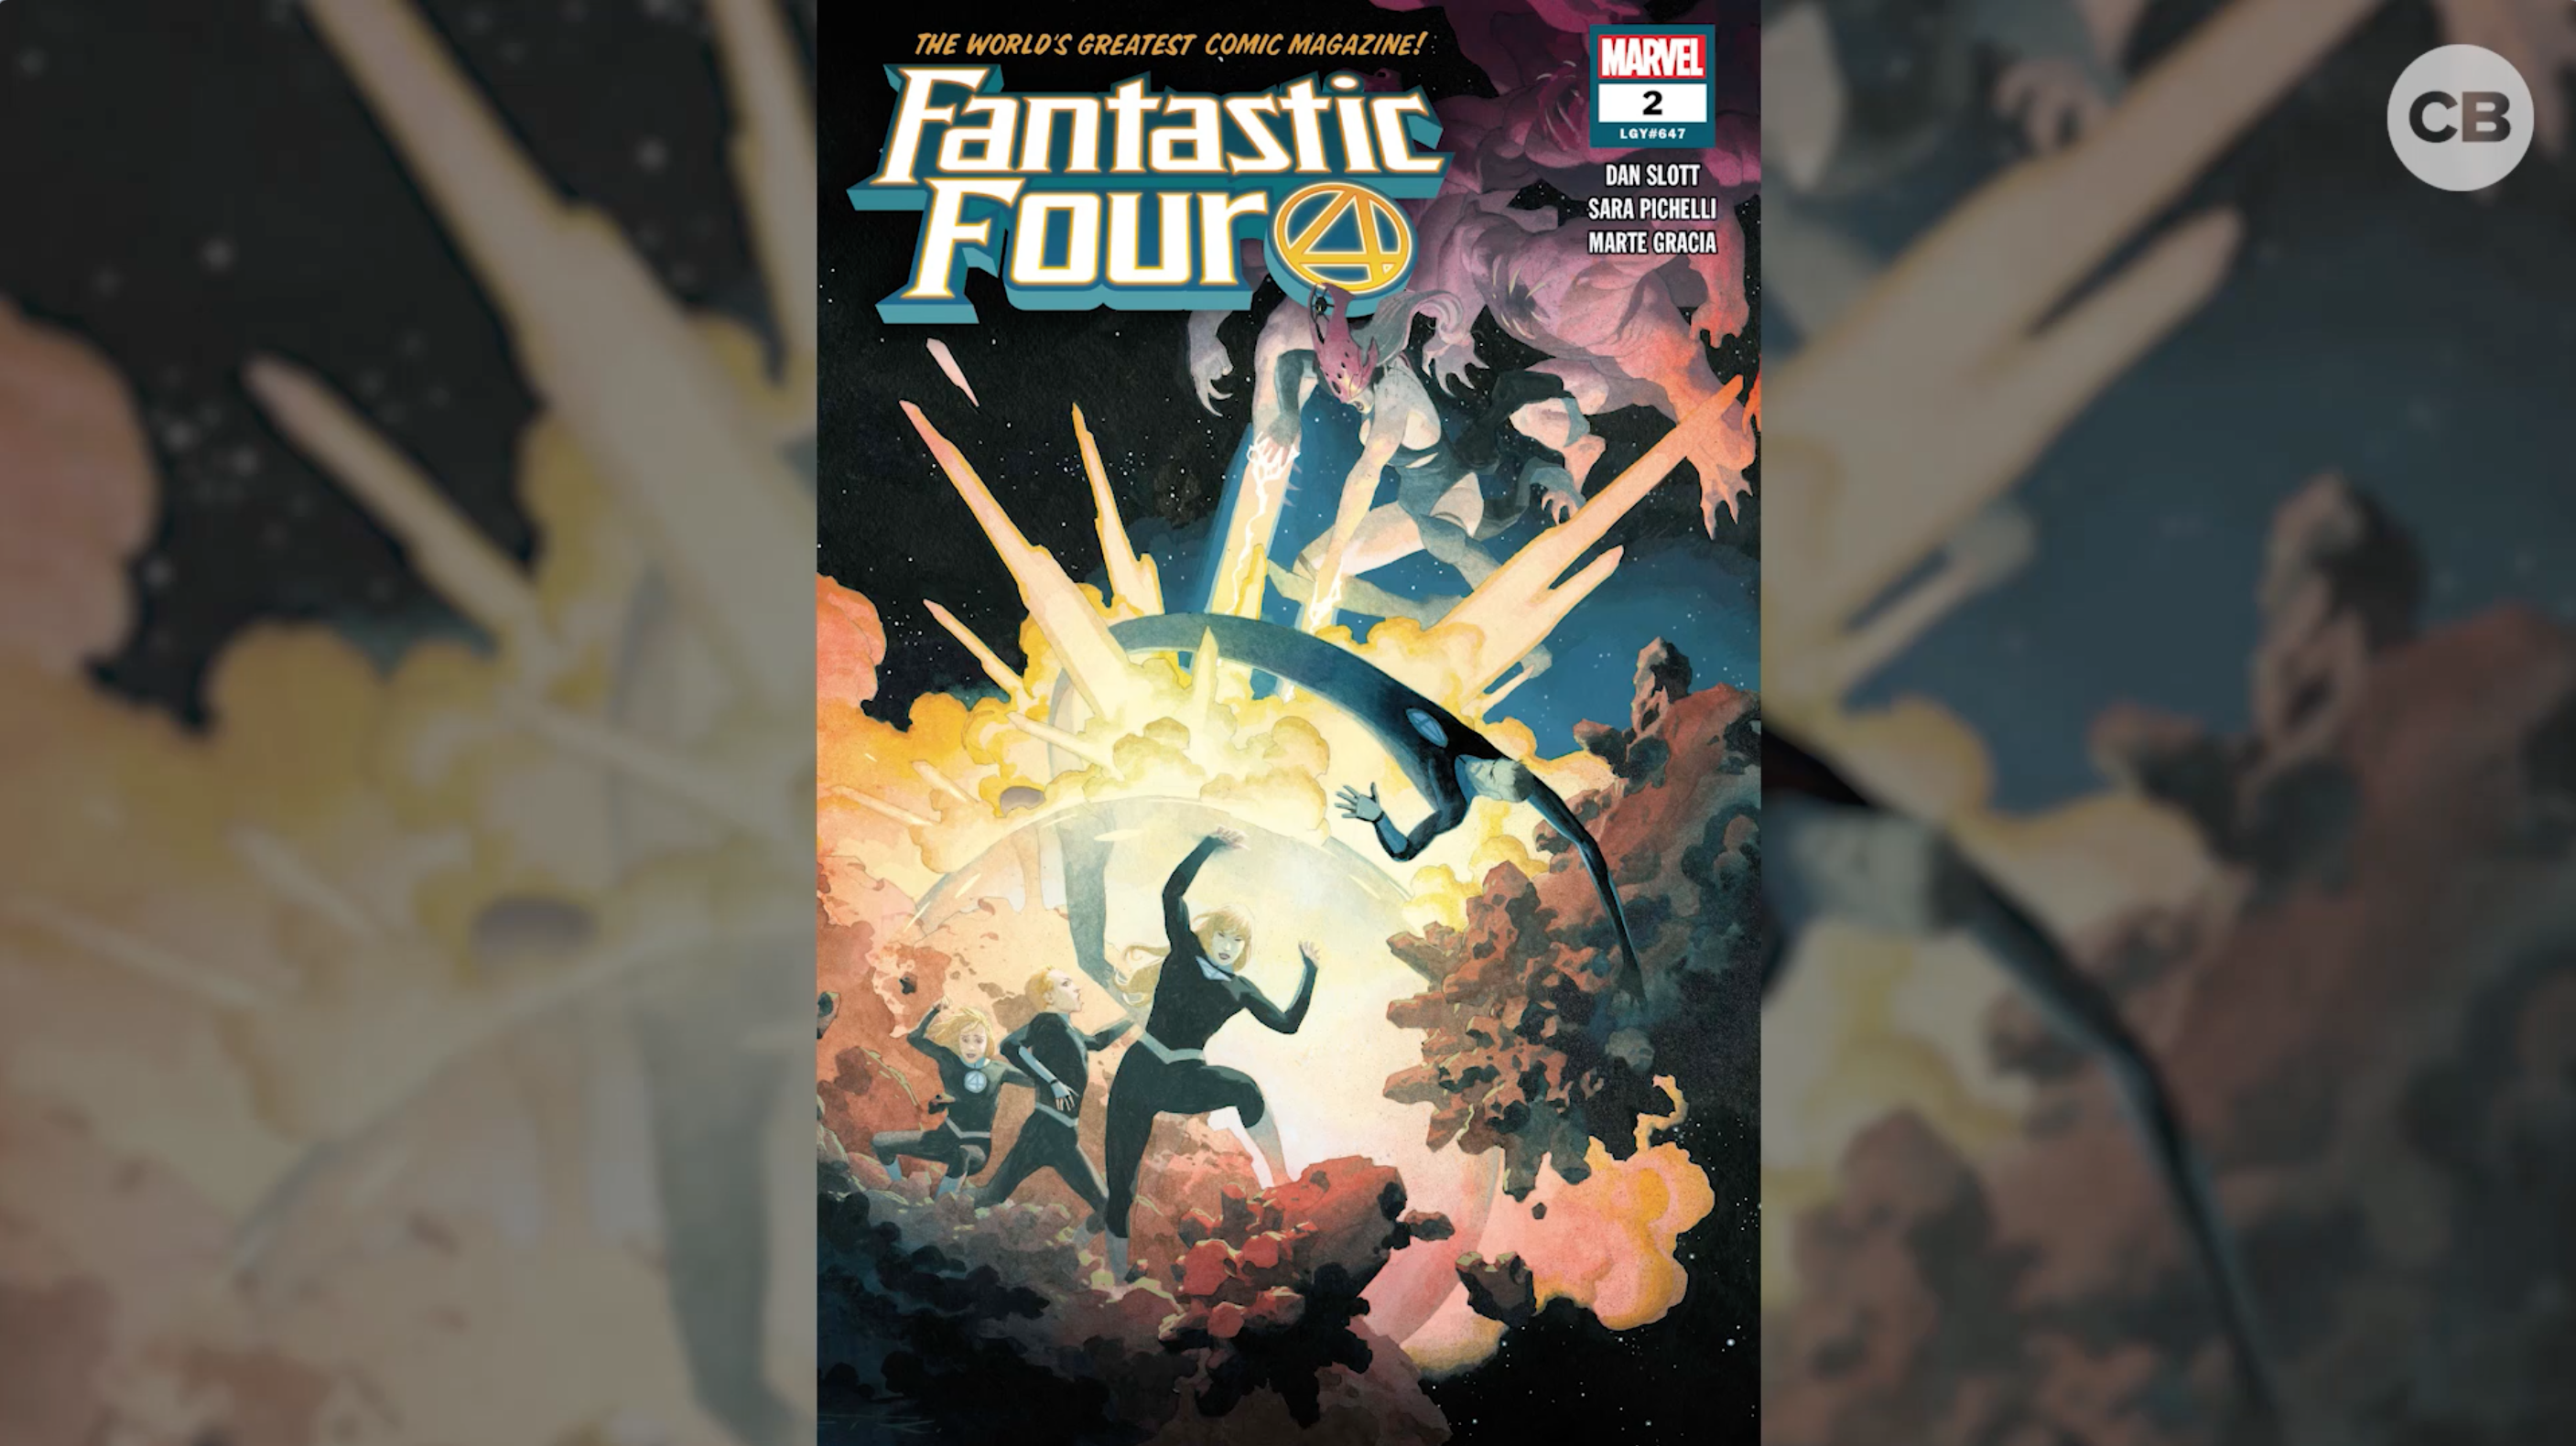 This Week In Comics - Fantastic Four #2 screen capture